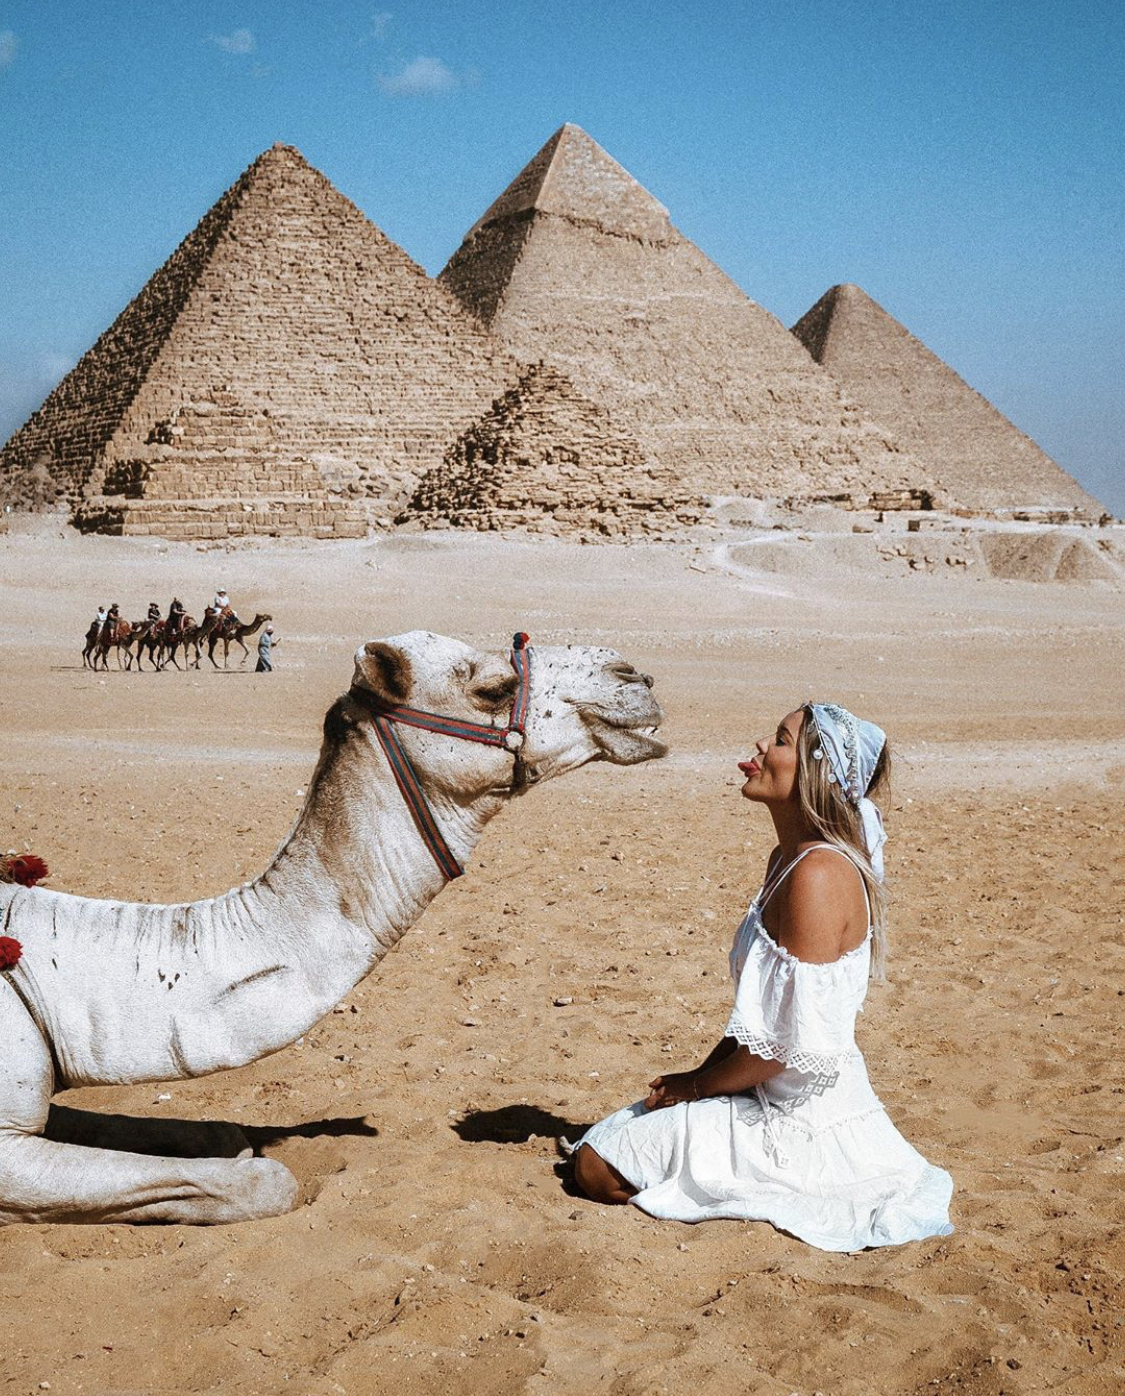 A woman sticking her tongue out at a camel in front of the Great Pyramids in Cairo, Egypt.